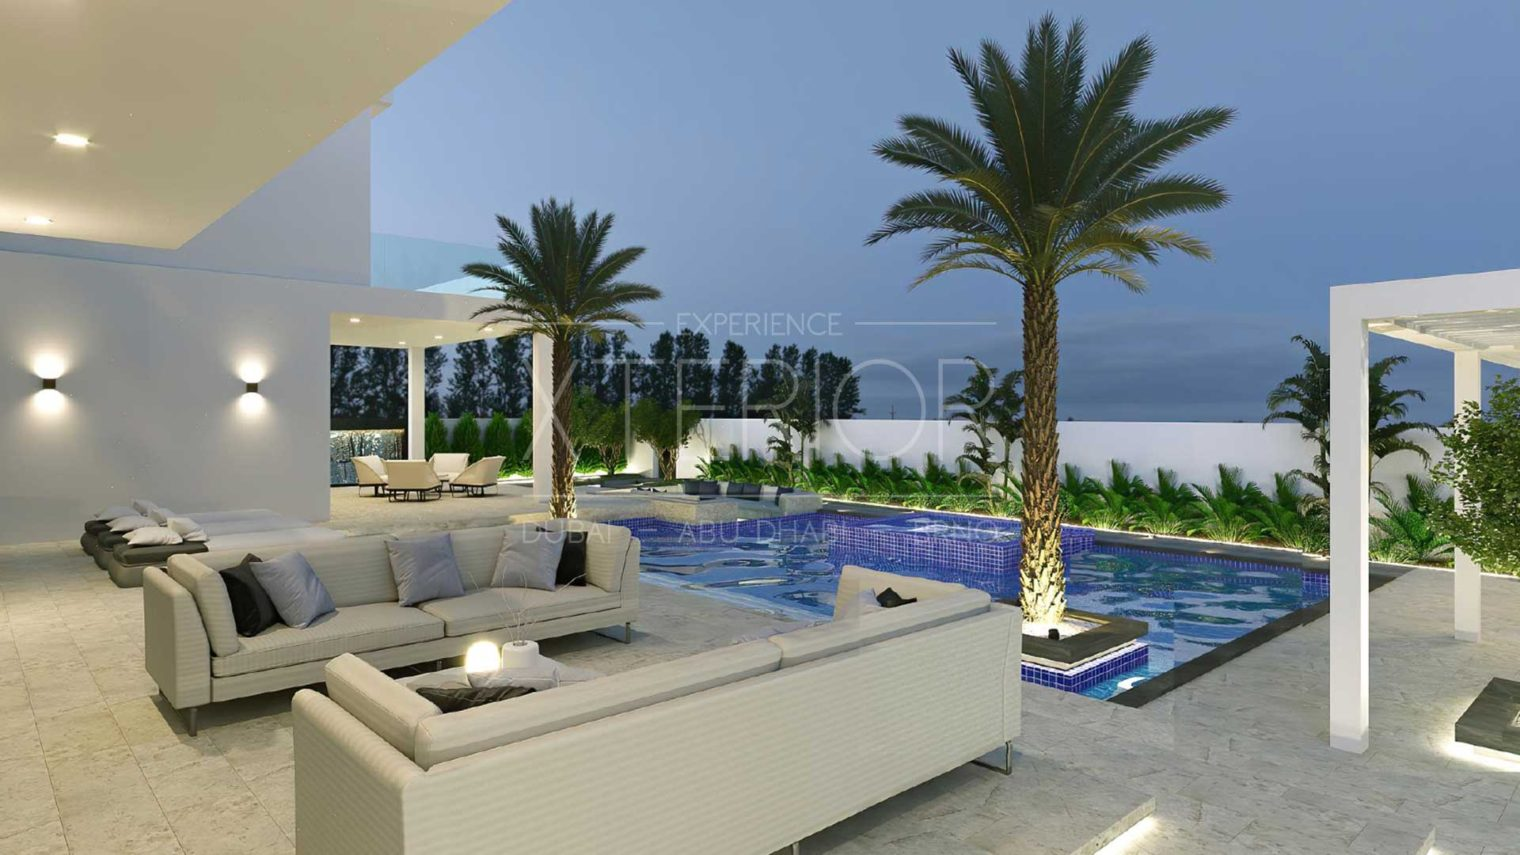 outdoor seating area with pool